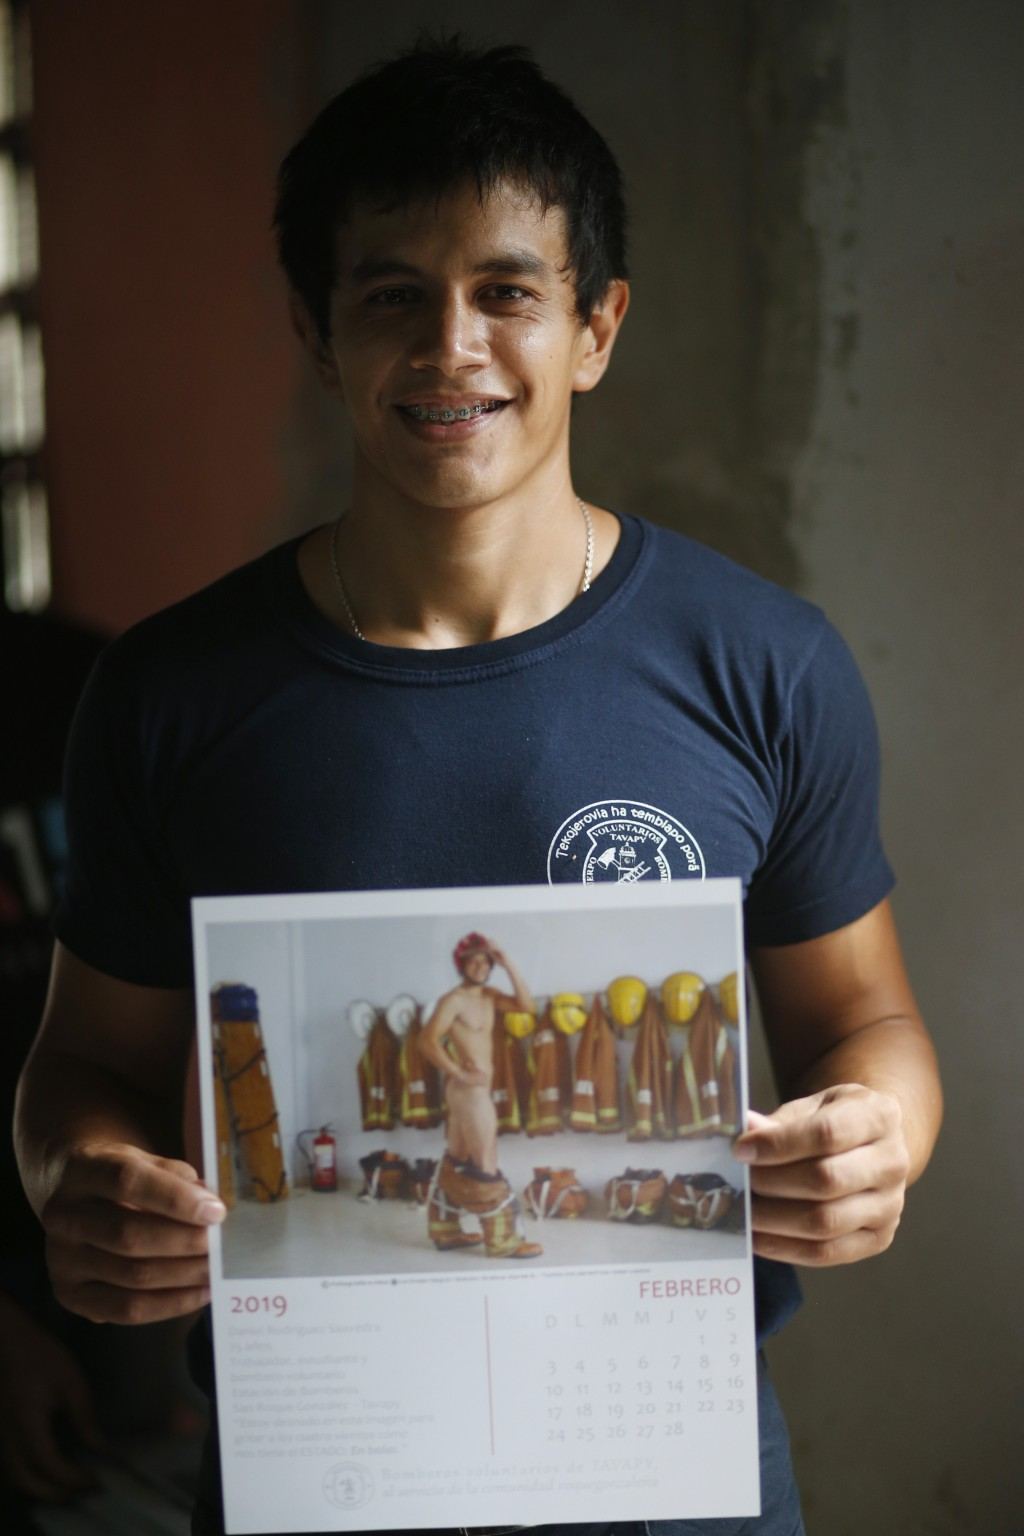 In this Jan. 12, 2019 photo, firefighter Daniel Rodriguez poses holding a calendar page with a nude photo of himself, in Asuncion, Paraguay. The capti